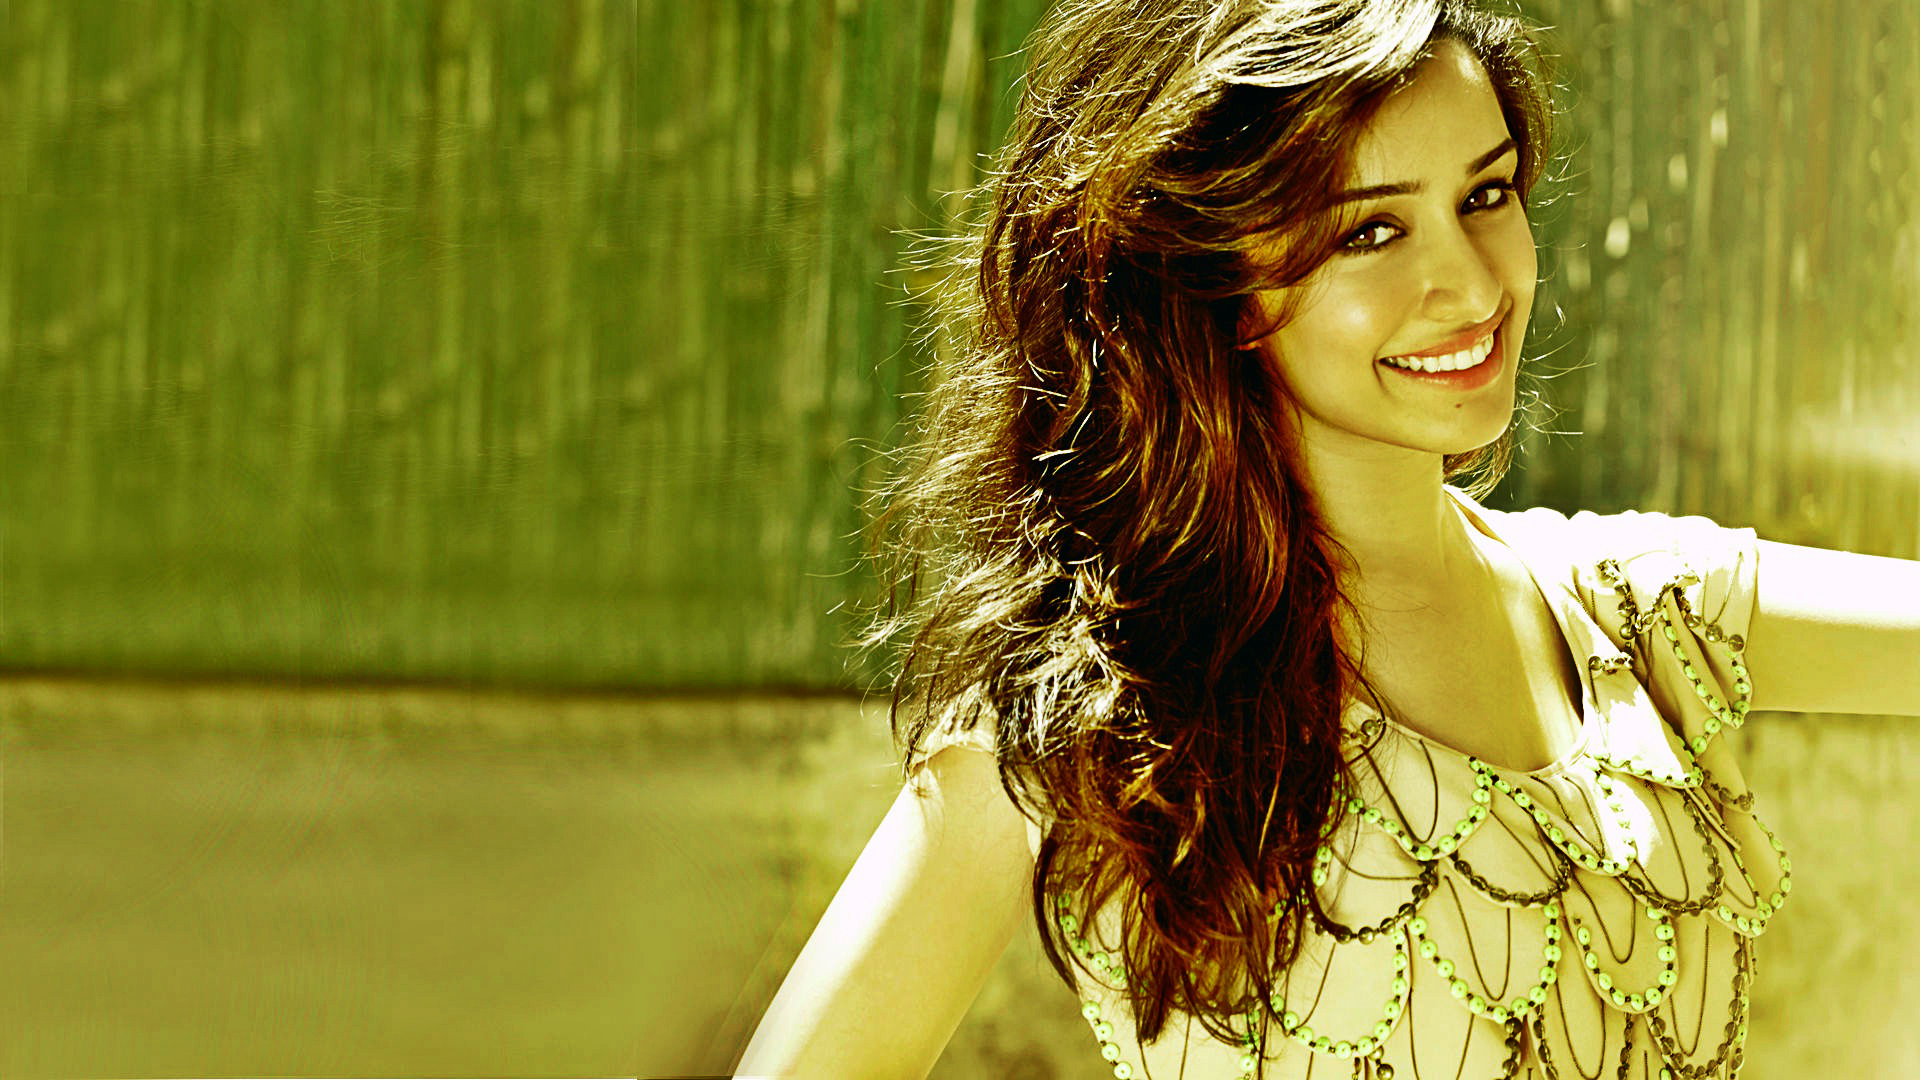 Shraddha Kapoor Beautiful Smiling Wallpapers Hd Wallpapers